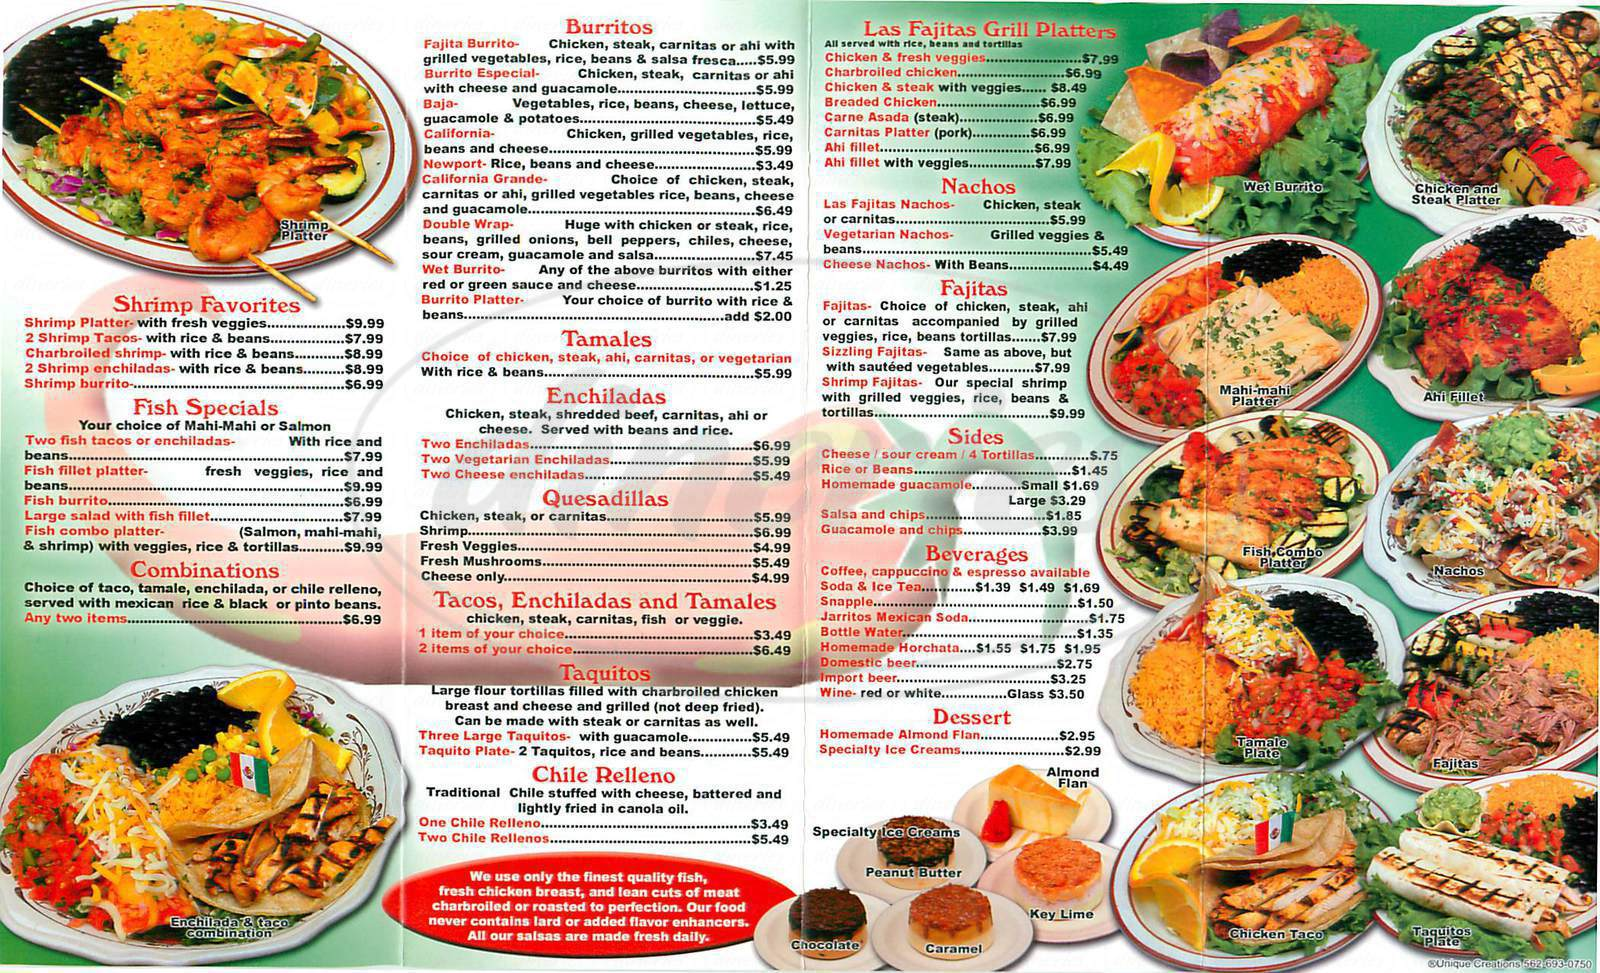 menu for Las Fajitas Grill